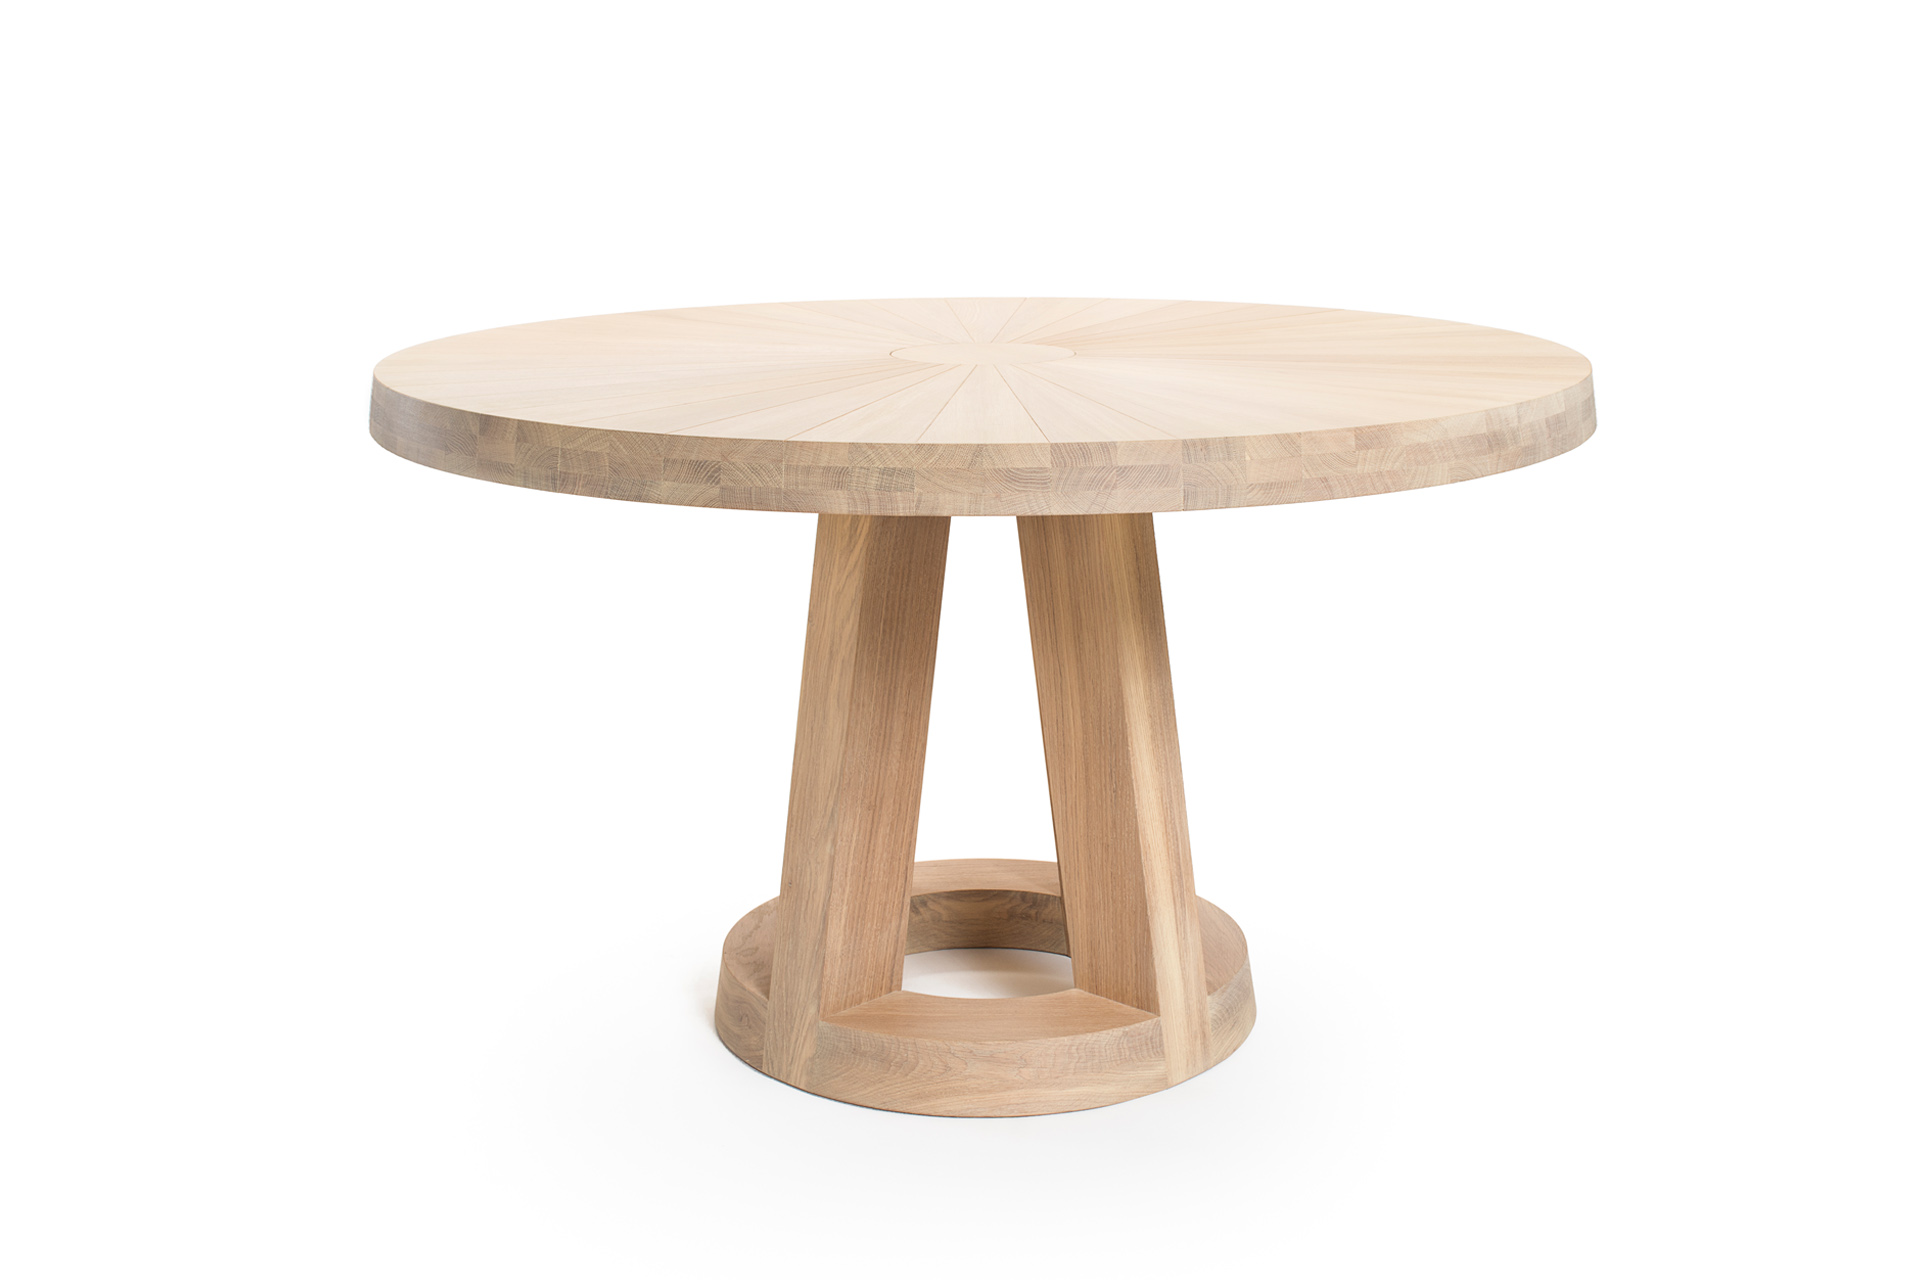 Solid round design table l Remy Meijers l Odesi  Your Dutch Design  Ronde eettafel design